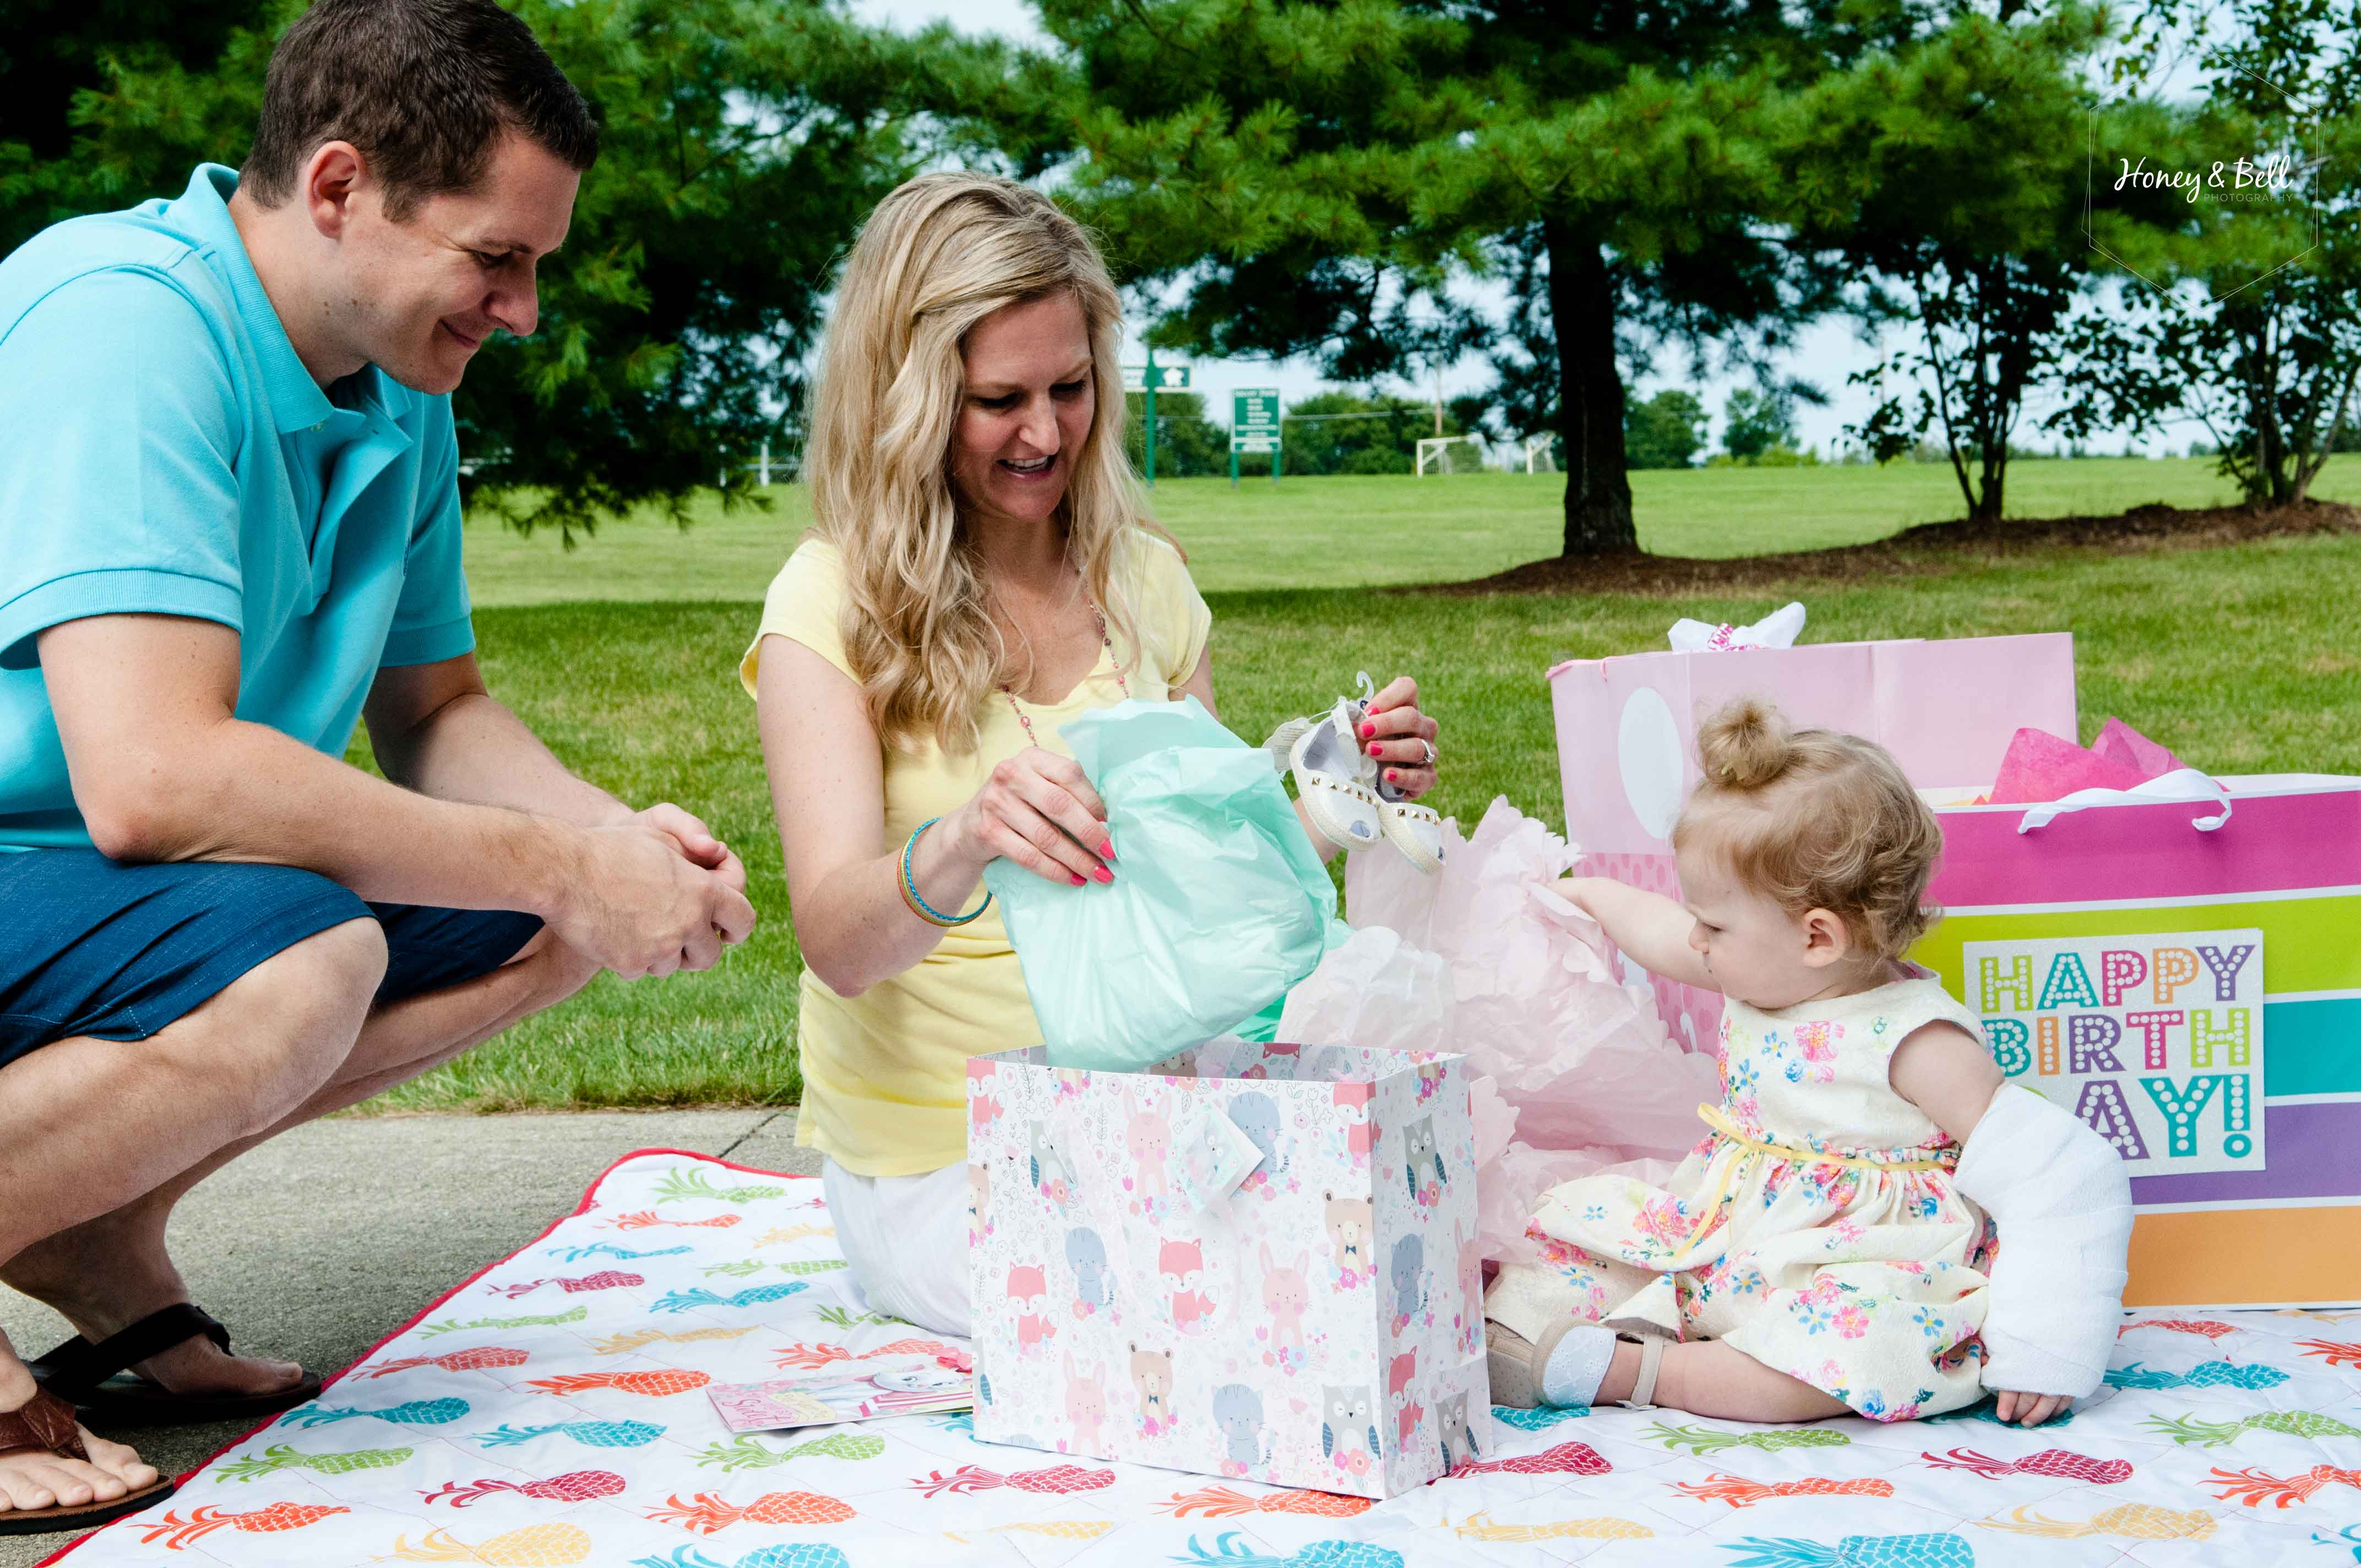 elyse-first-birthday-clarkston-michigan-family-photographer-parks06